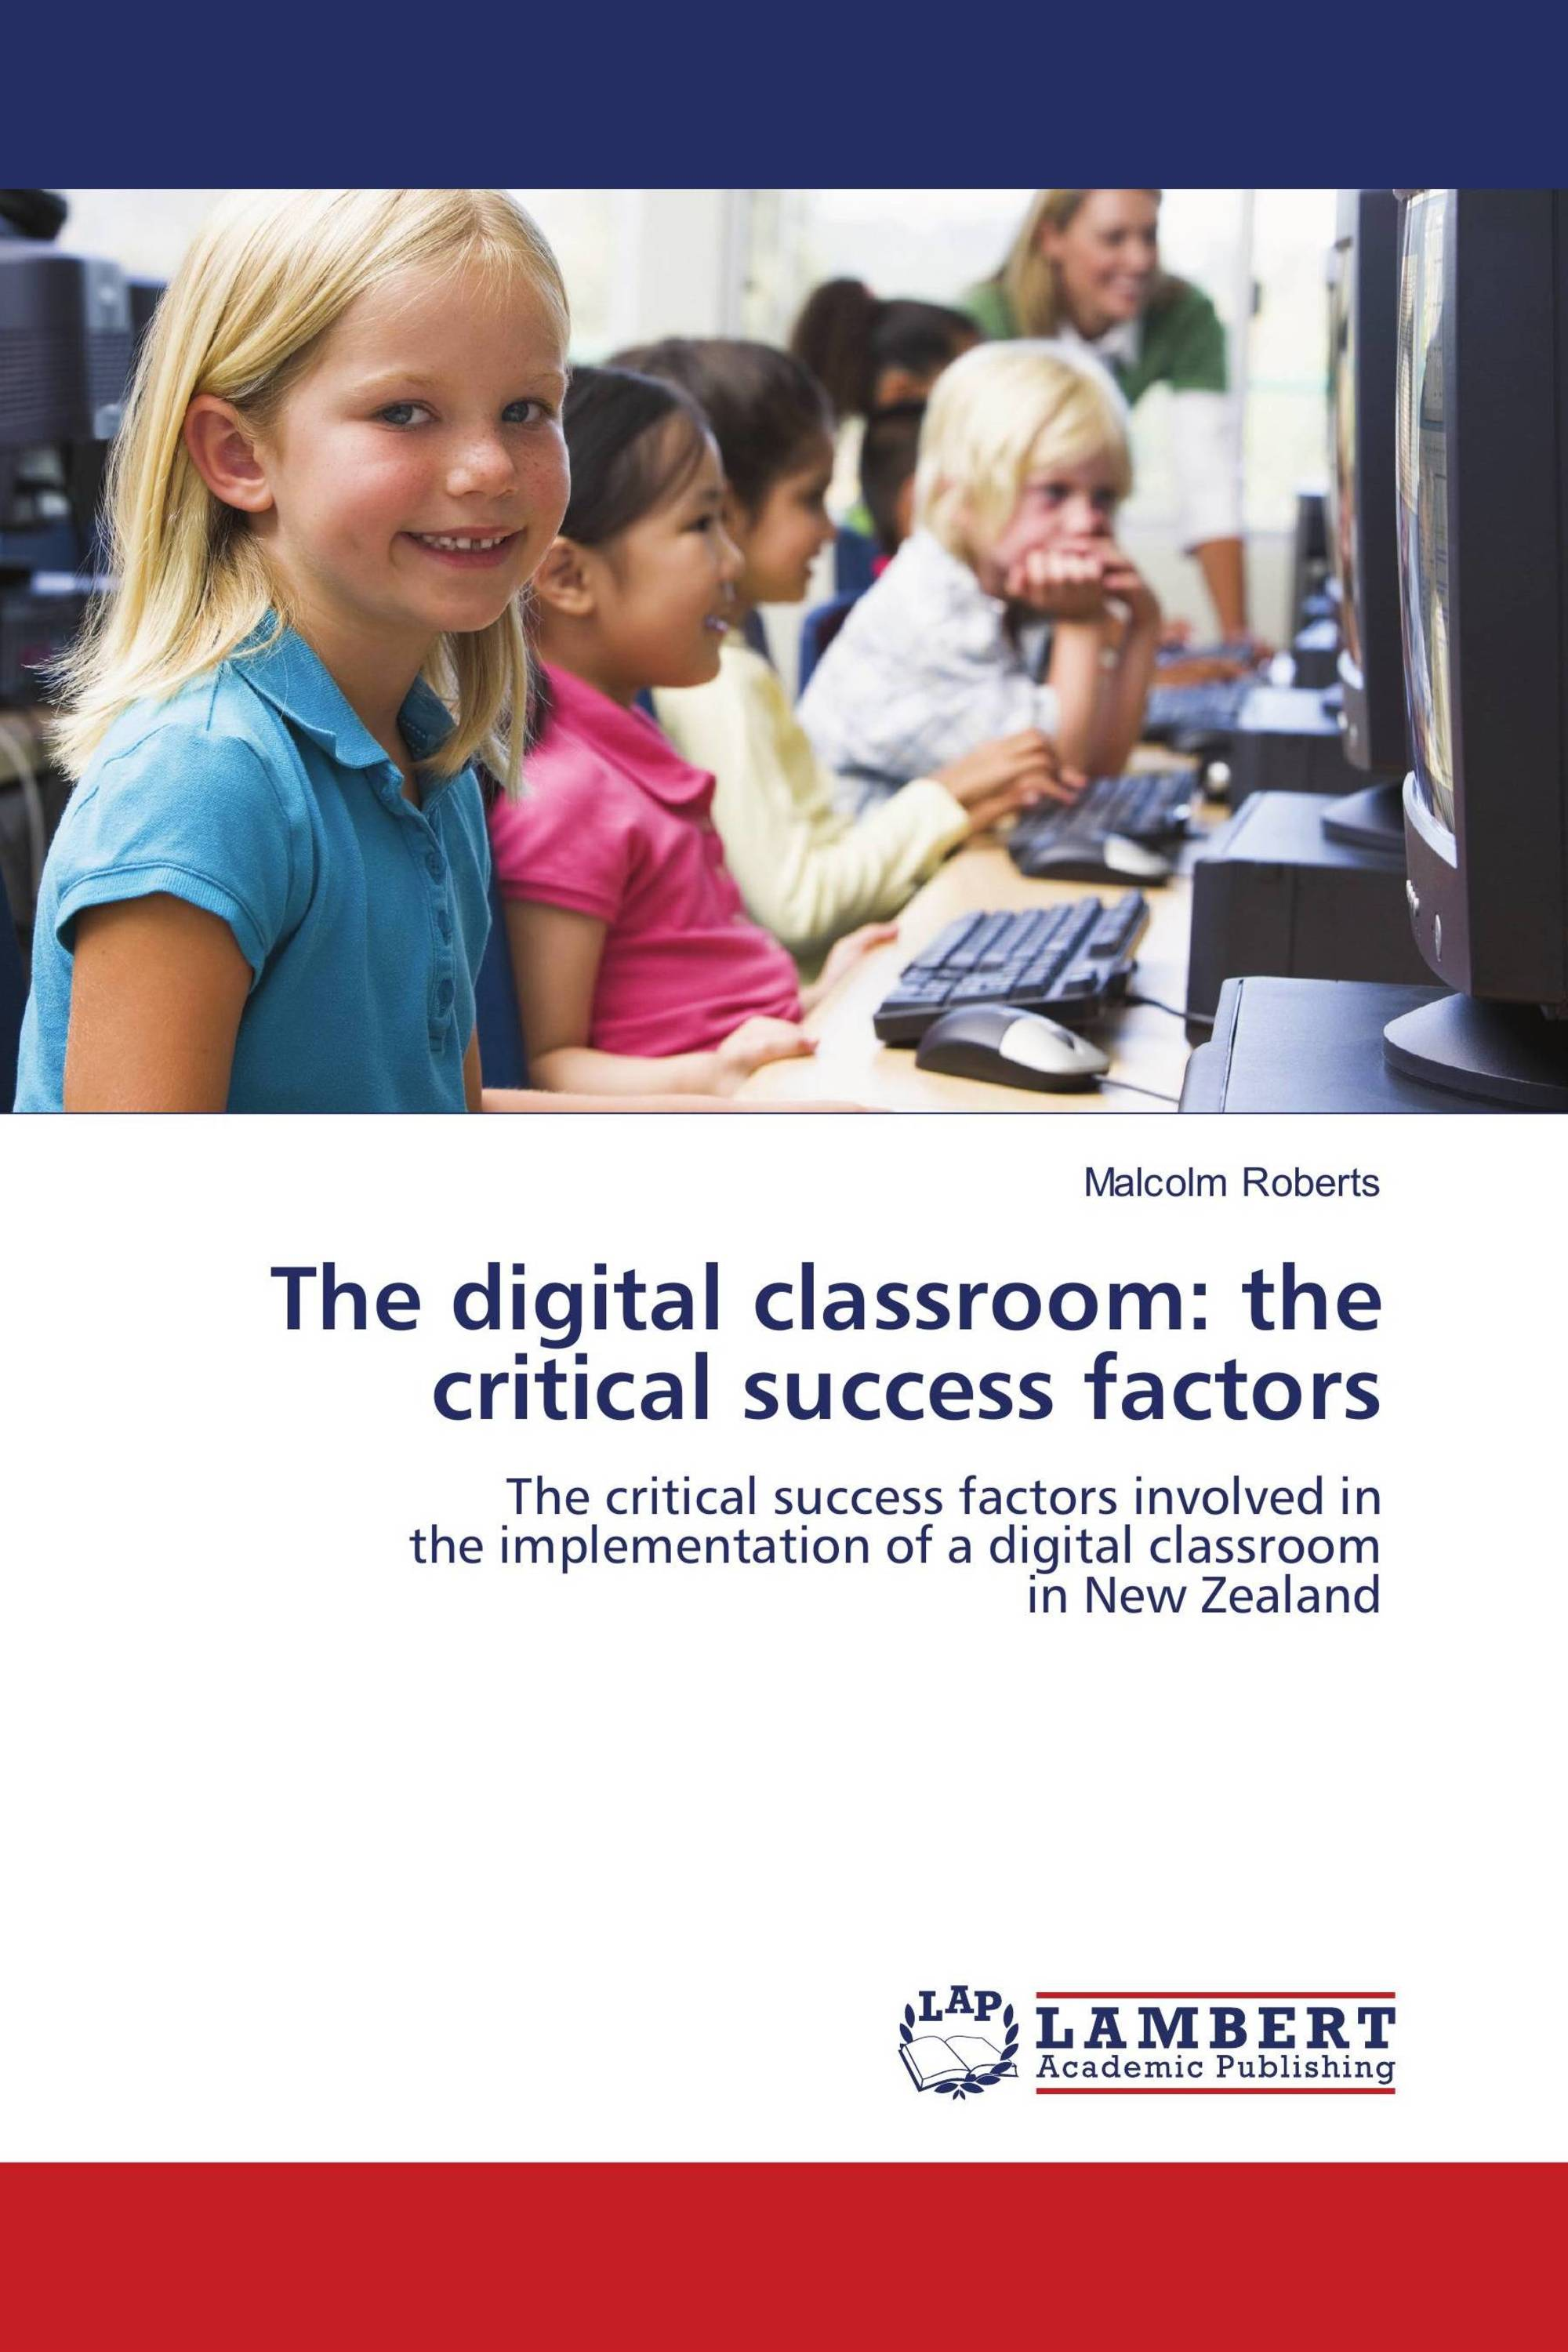 The digital classroom: the critical success factors